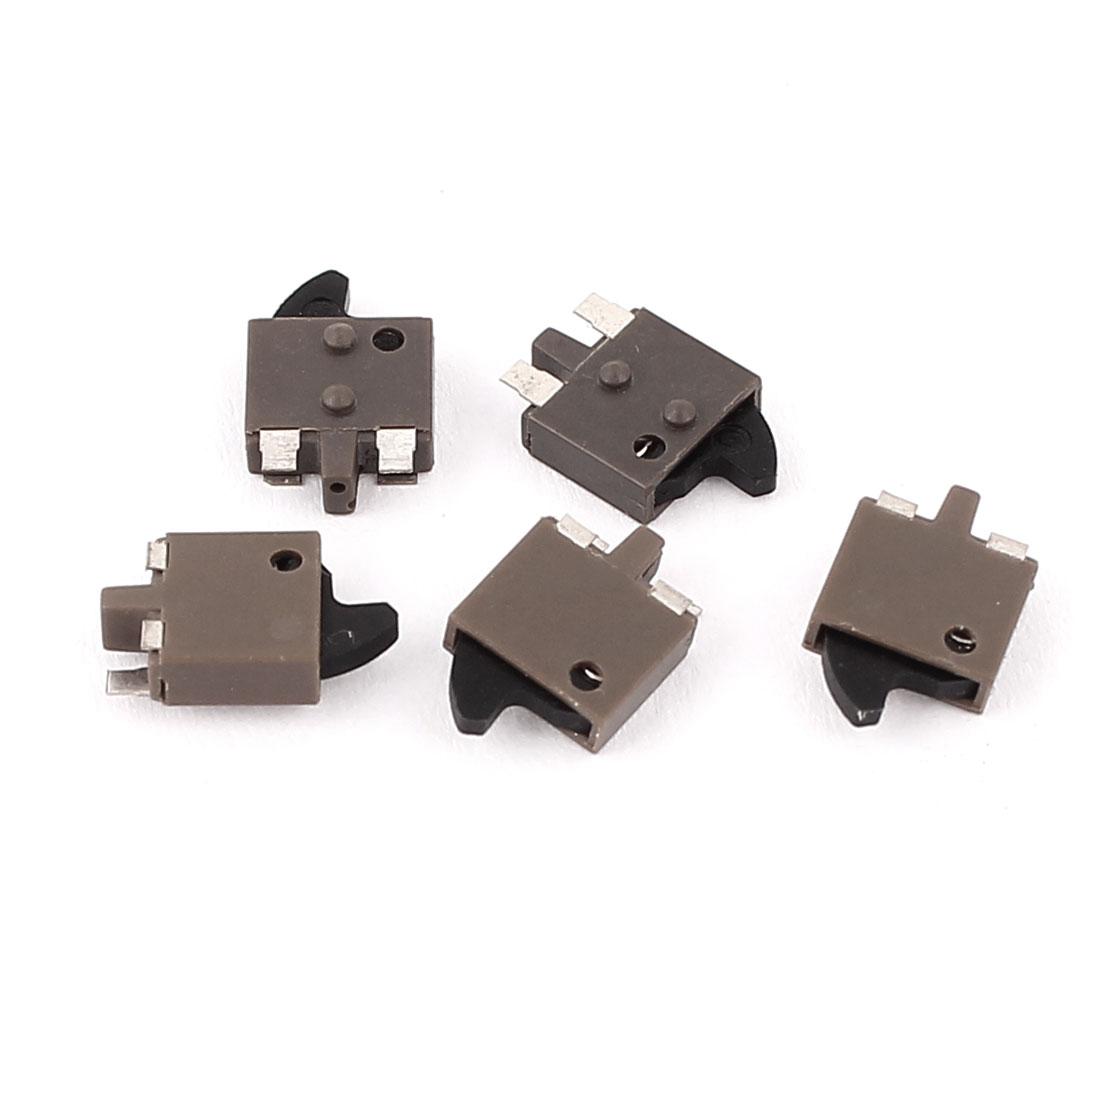 5Pcs Momentary Micro Switch 9x5.5x2mm for Mobile TV DVD EVD Door